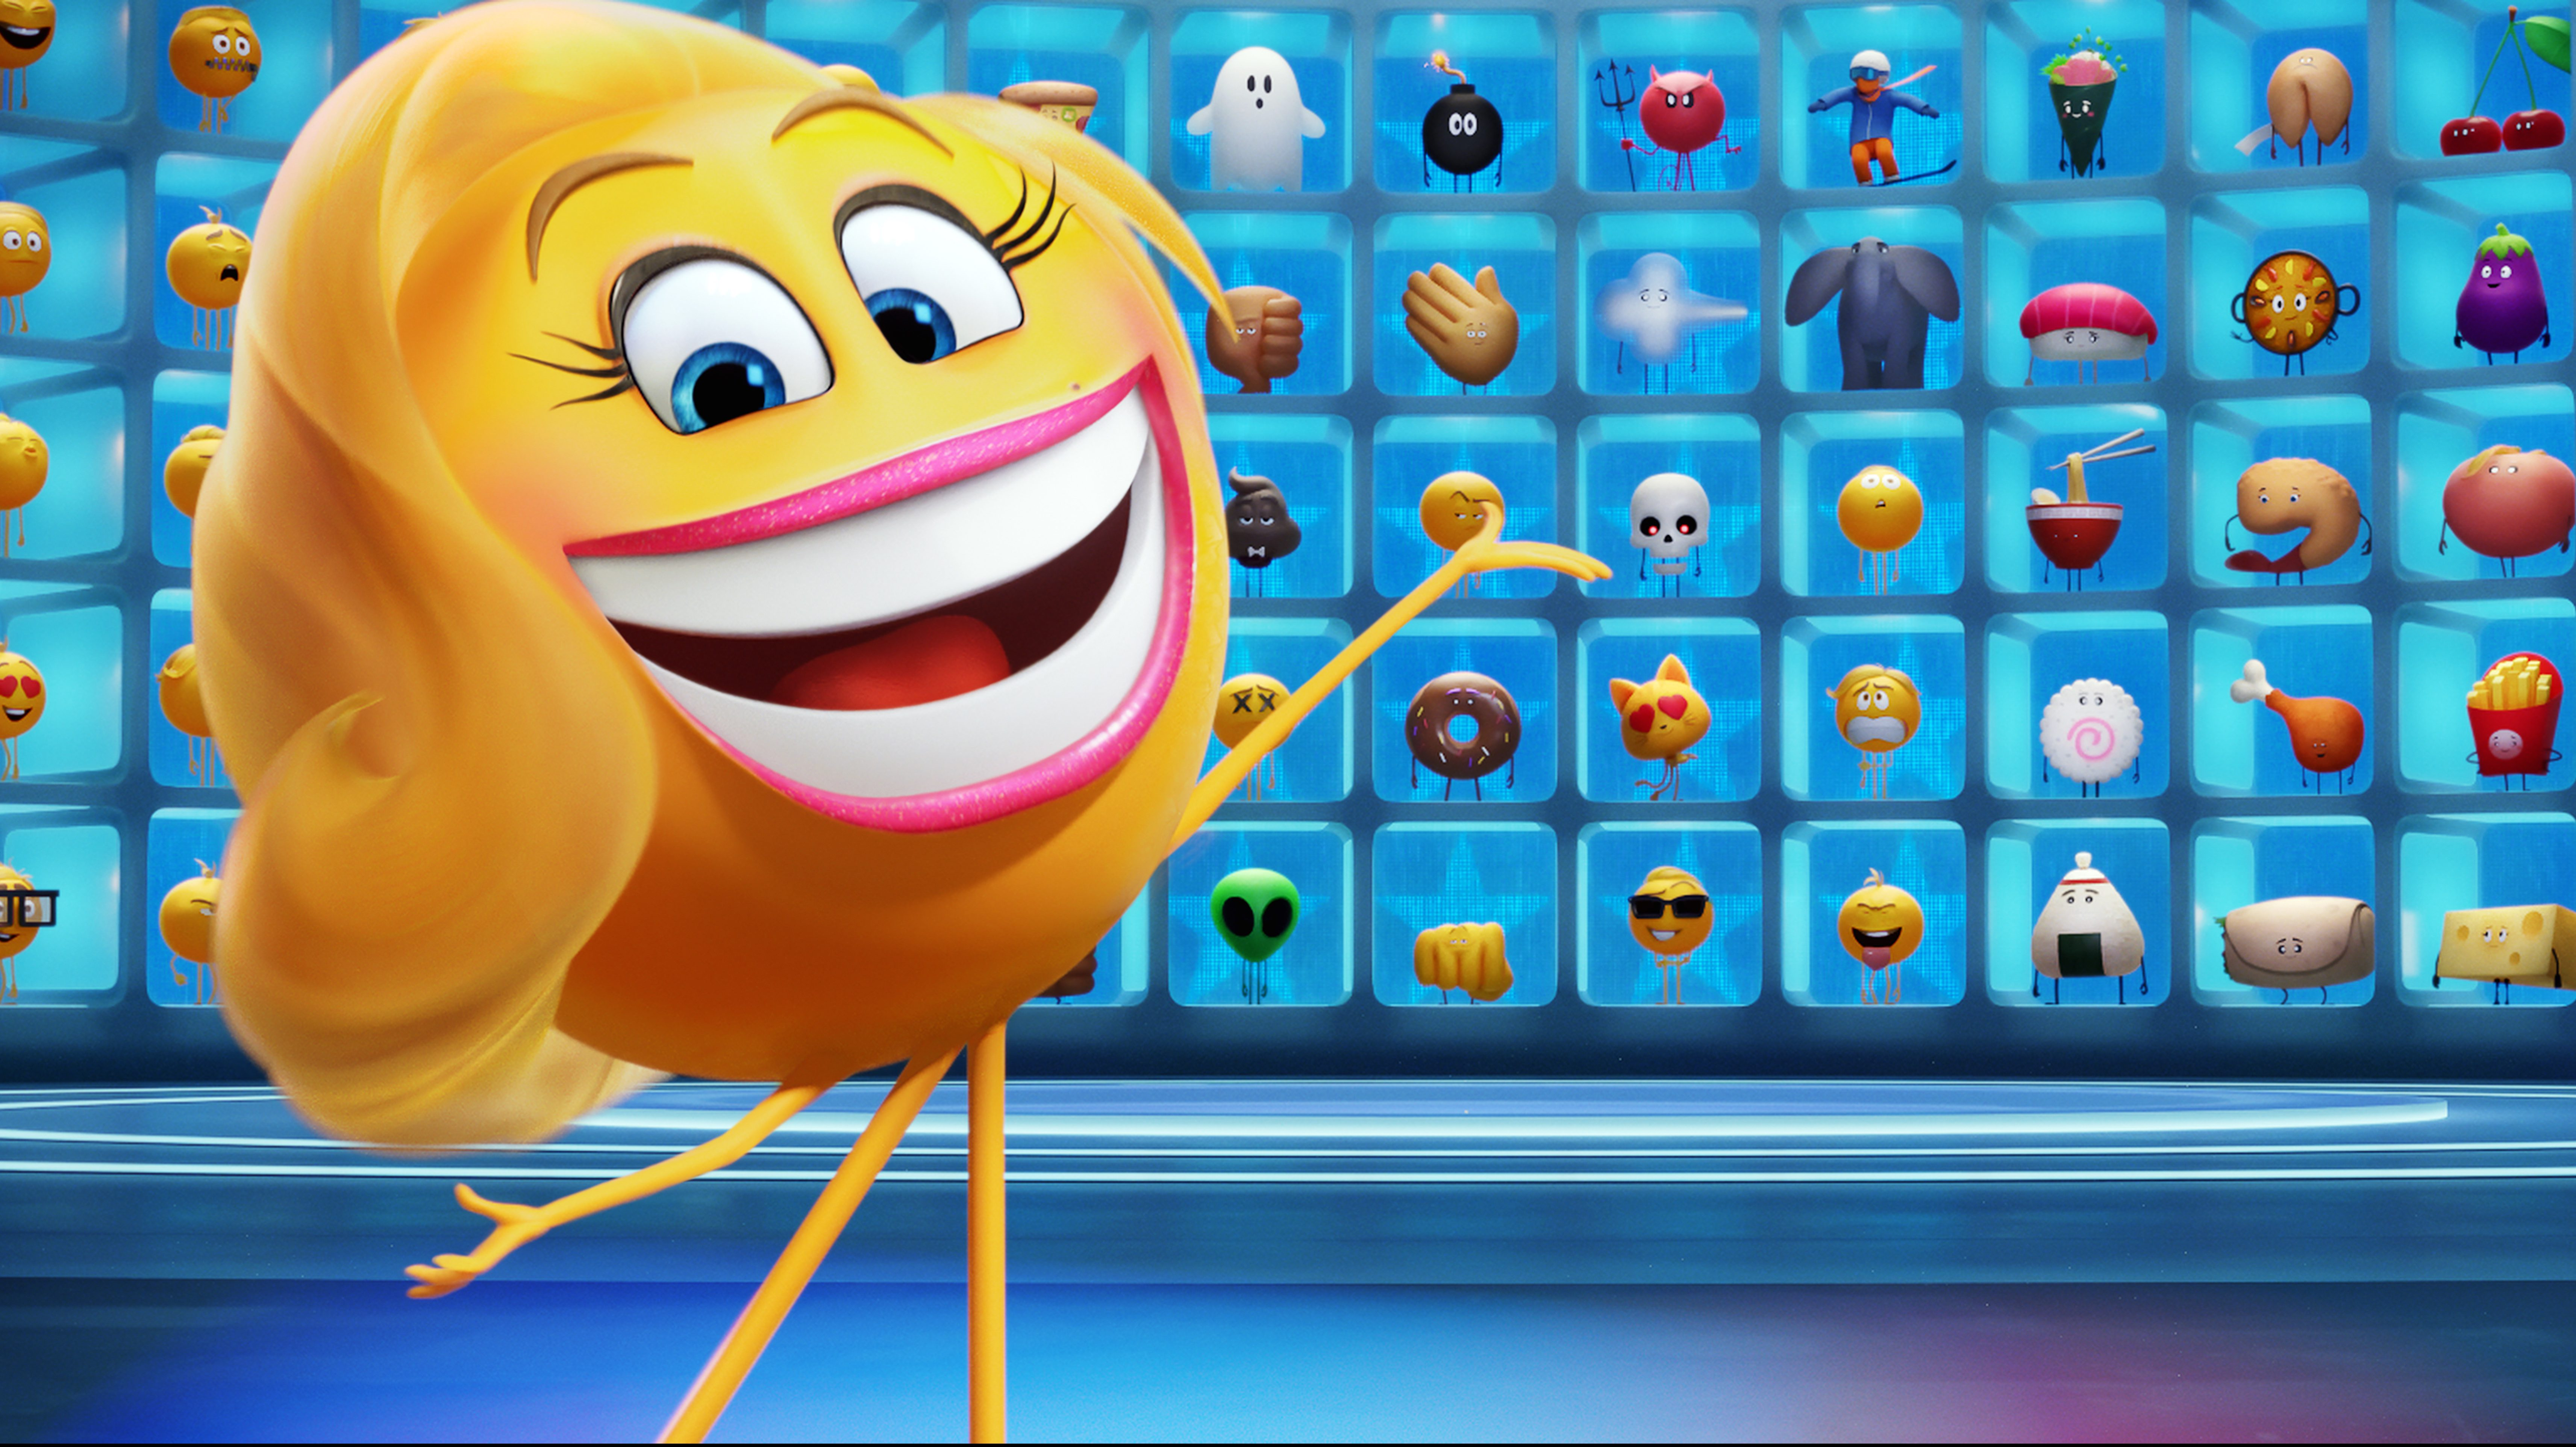 The Emoji Movie 2017 Hd Movies 4k Wallpapers Images Backgrounds Photos And Pictures